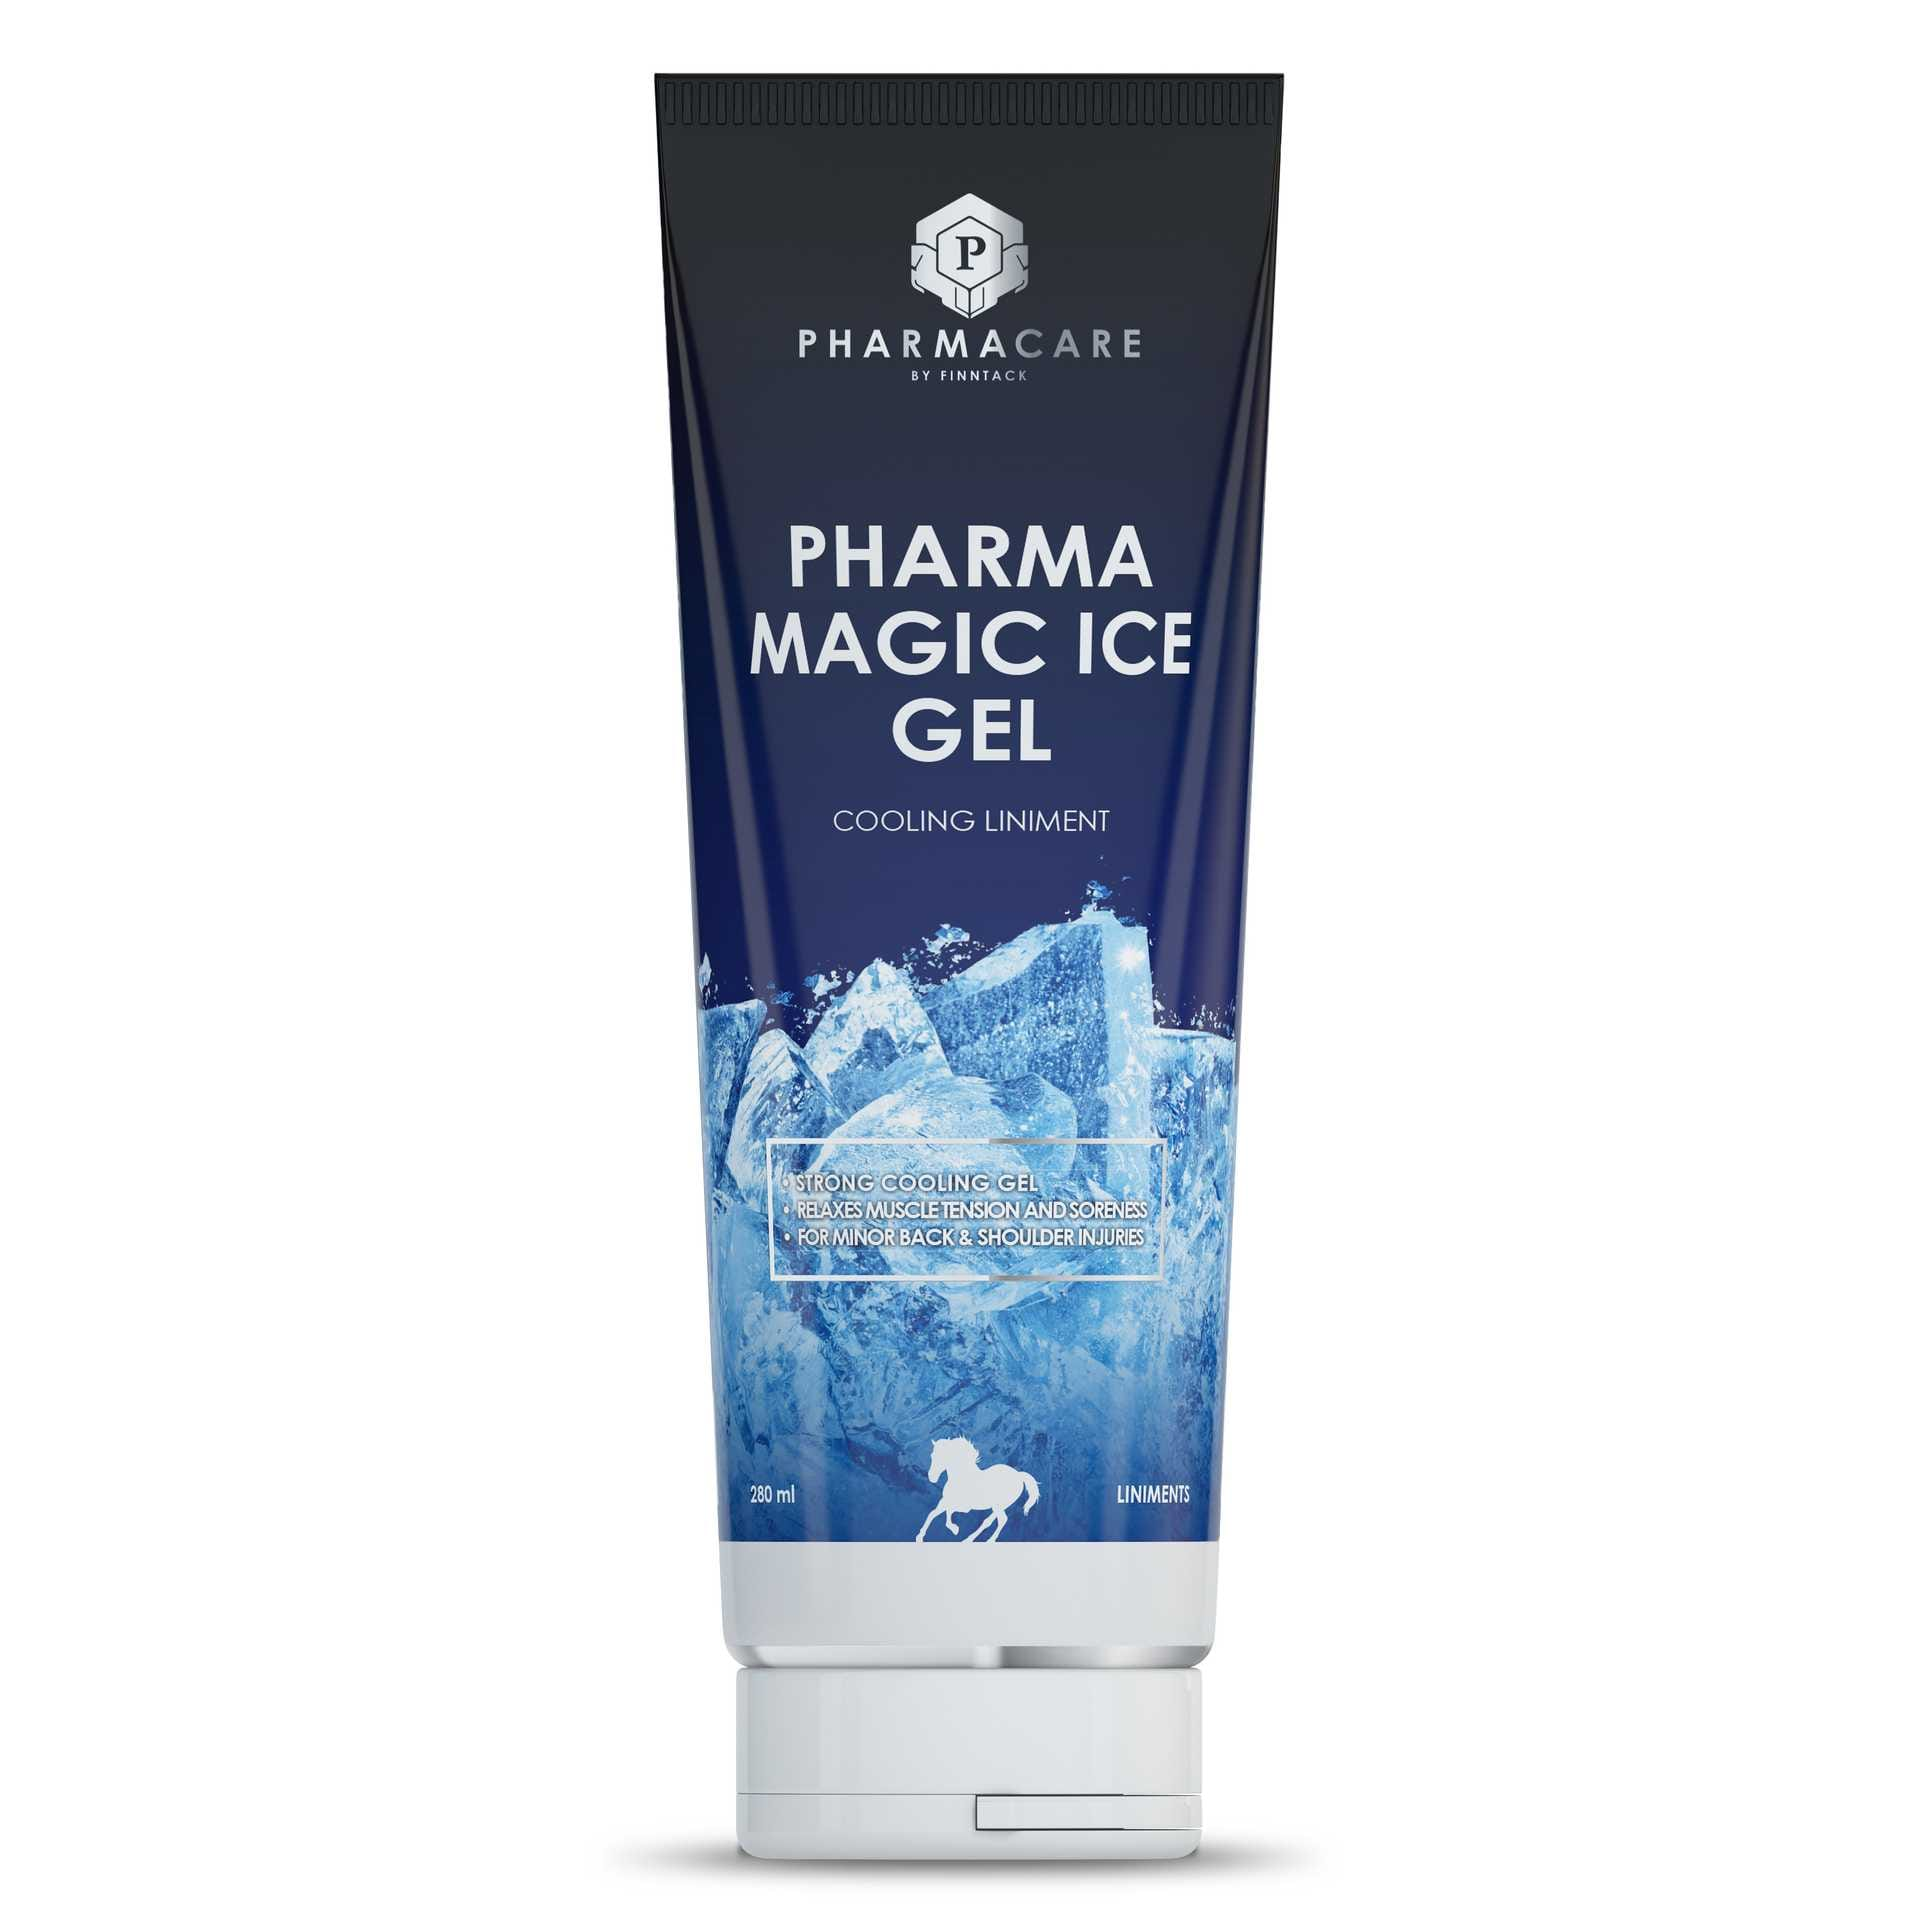 Pharma Magic Ice Gel, 280 ml